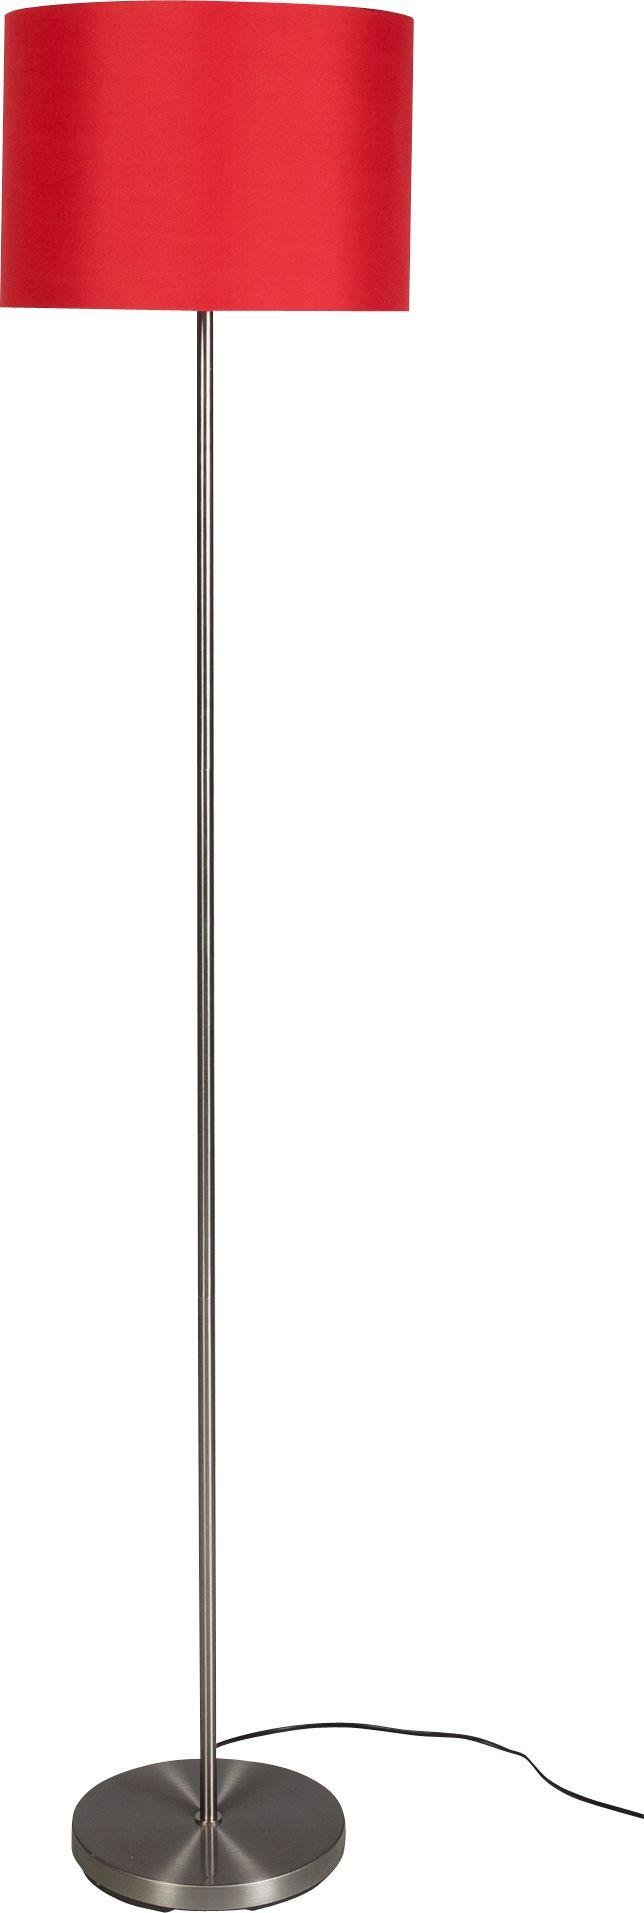 Argos Home Satin Stick Floor Lamp - Poppy Red